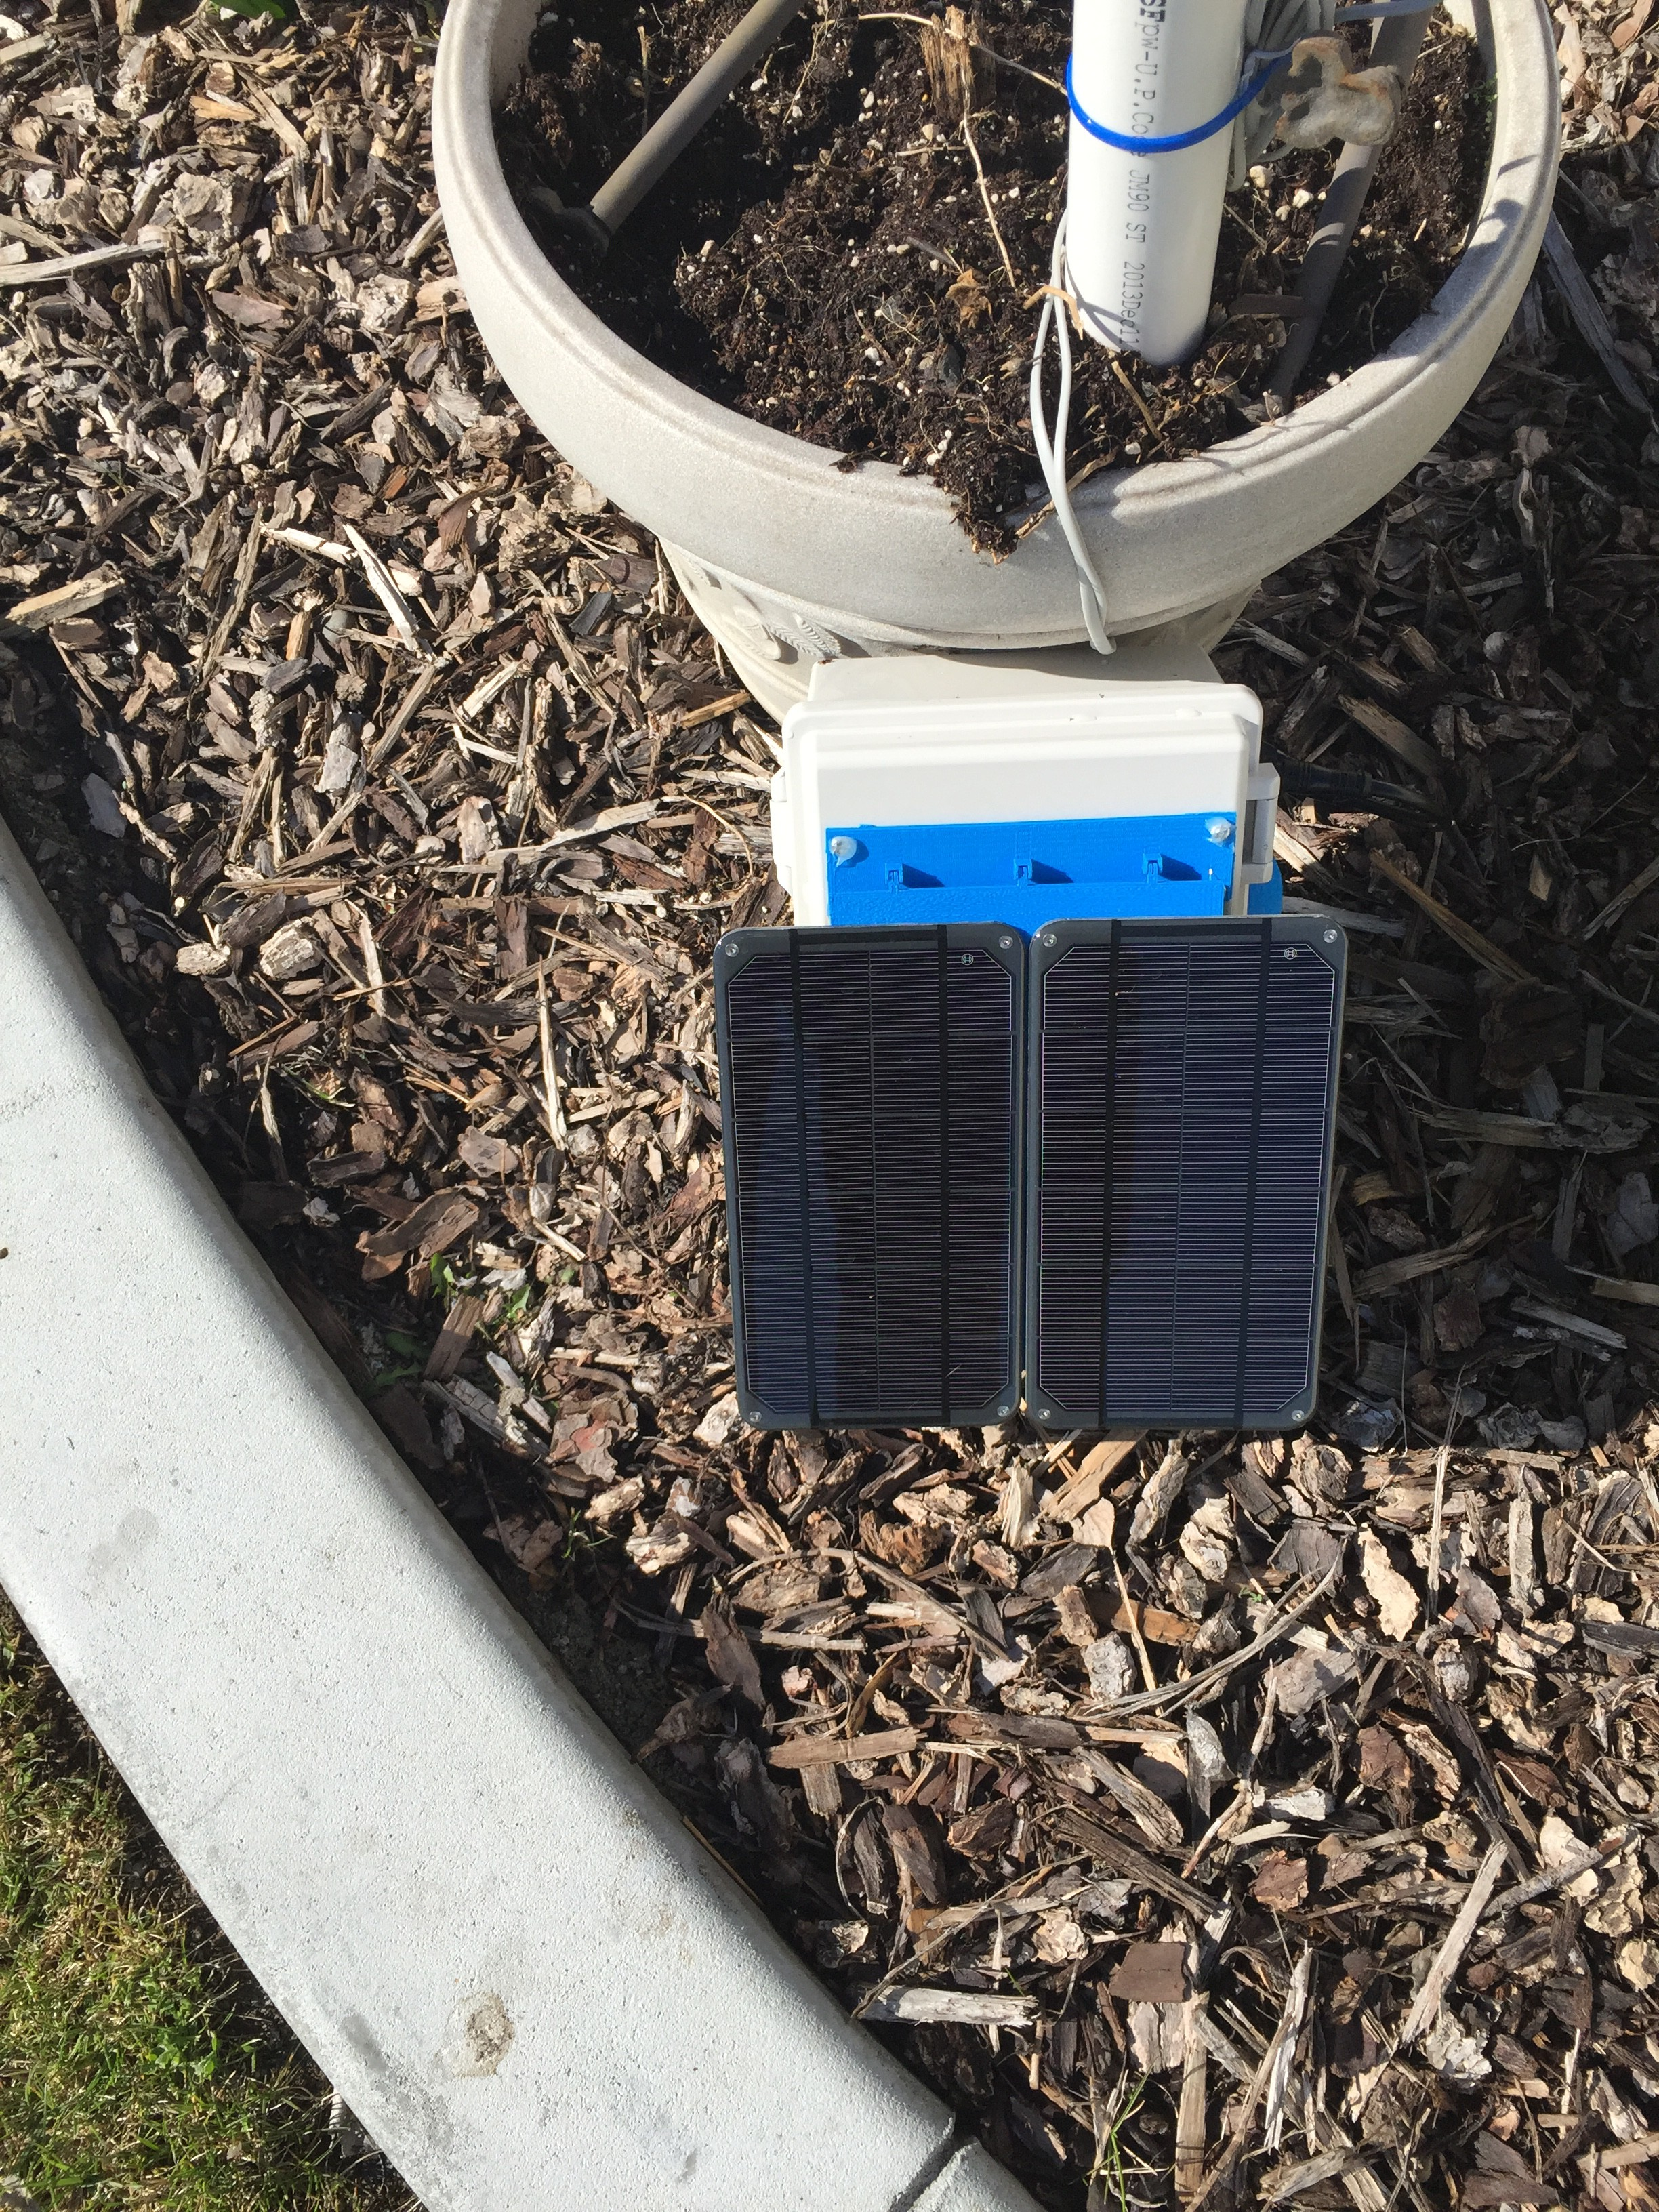 WeatherPi Solar Powered Raspberry Pi Project